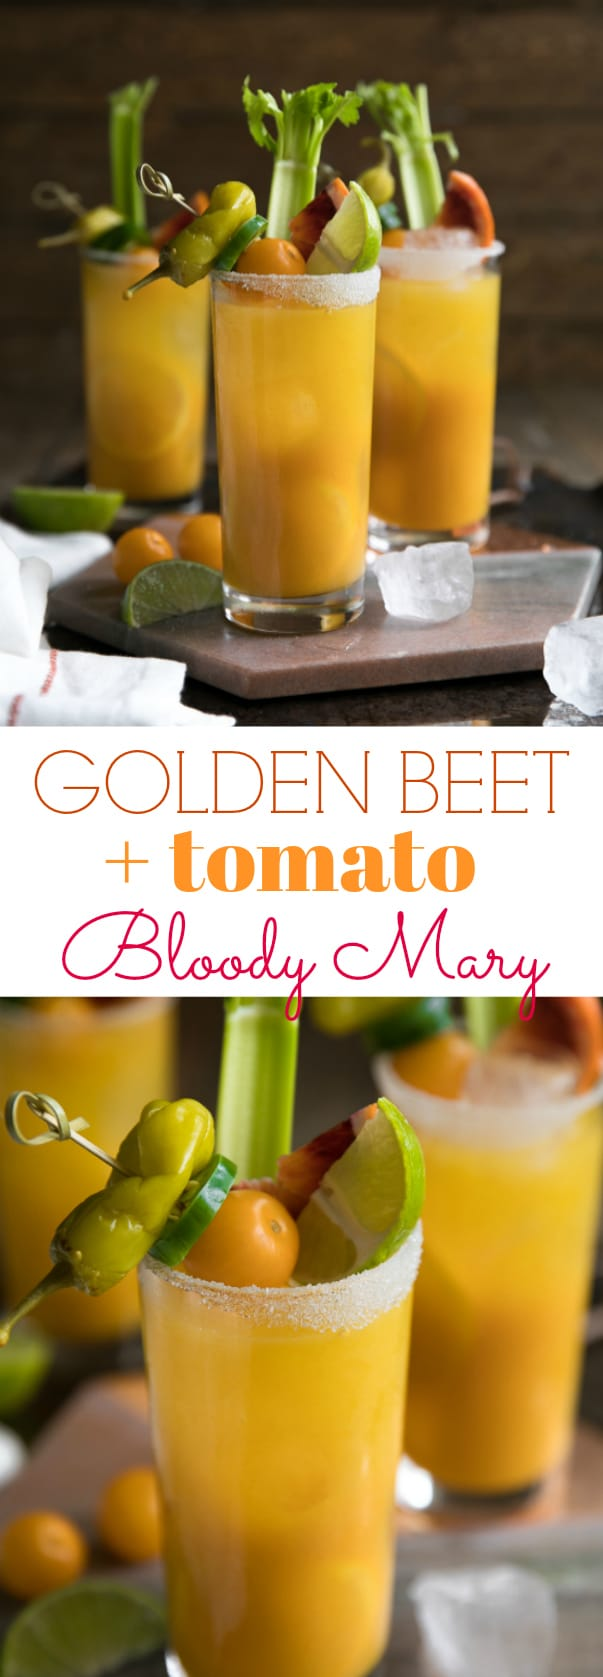 Golden Beet and Tomato Bloody Mary. Cheers to the weekend with this nutrient (and vodka) filled Golden Beet and Tomato Bloody Mary. Made with golden beets, yellow heirloom tomatoes, vodka, and all the fixings, these beautiful Bloody Mary\'s are delicious, and just what your next brunch party calls for. via @theforkedspoon #bloodymary #beets #goldenbeets #brunch #recipe #cocktailrecipe #vodka #easyrecipe #breakfast | For this recipe and more visit, https://theforkedspoon.com/